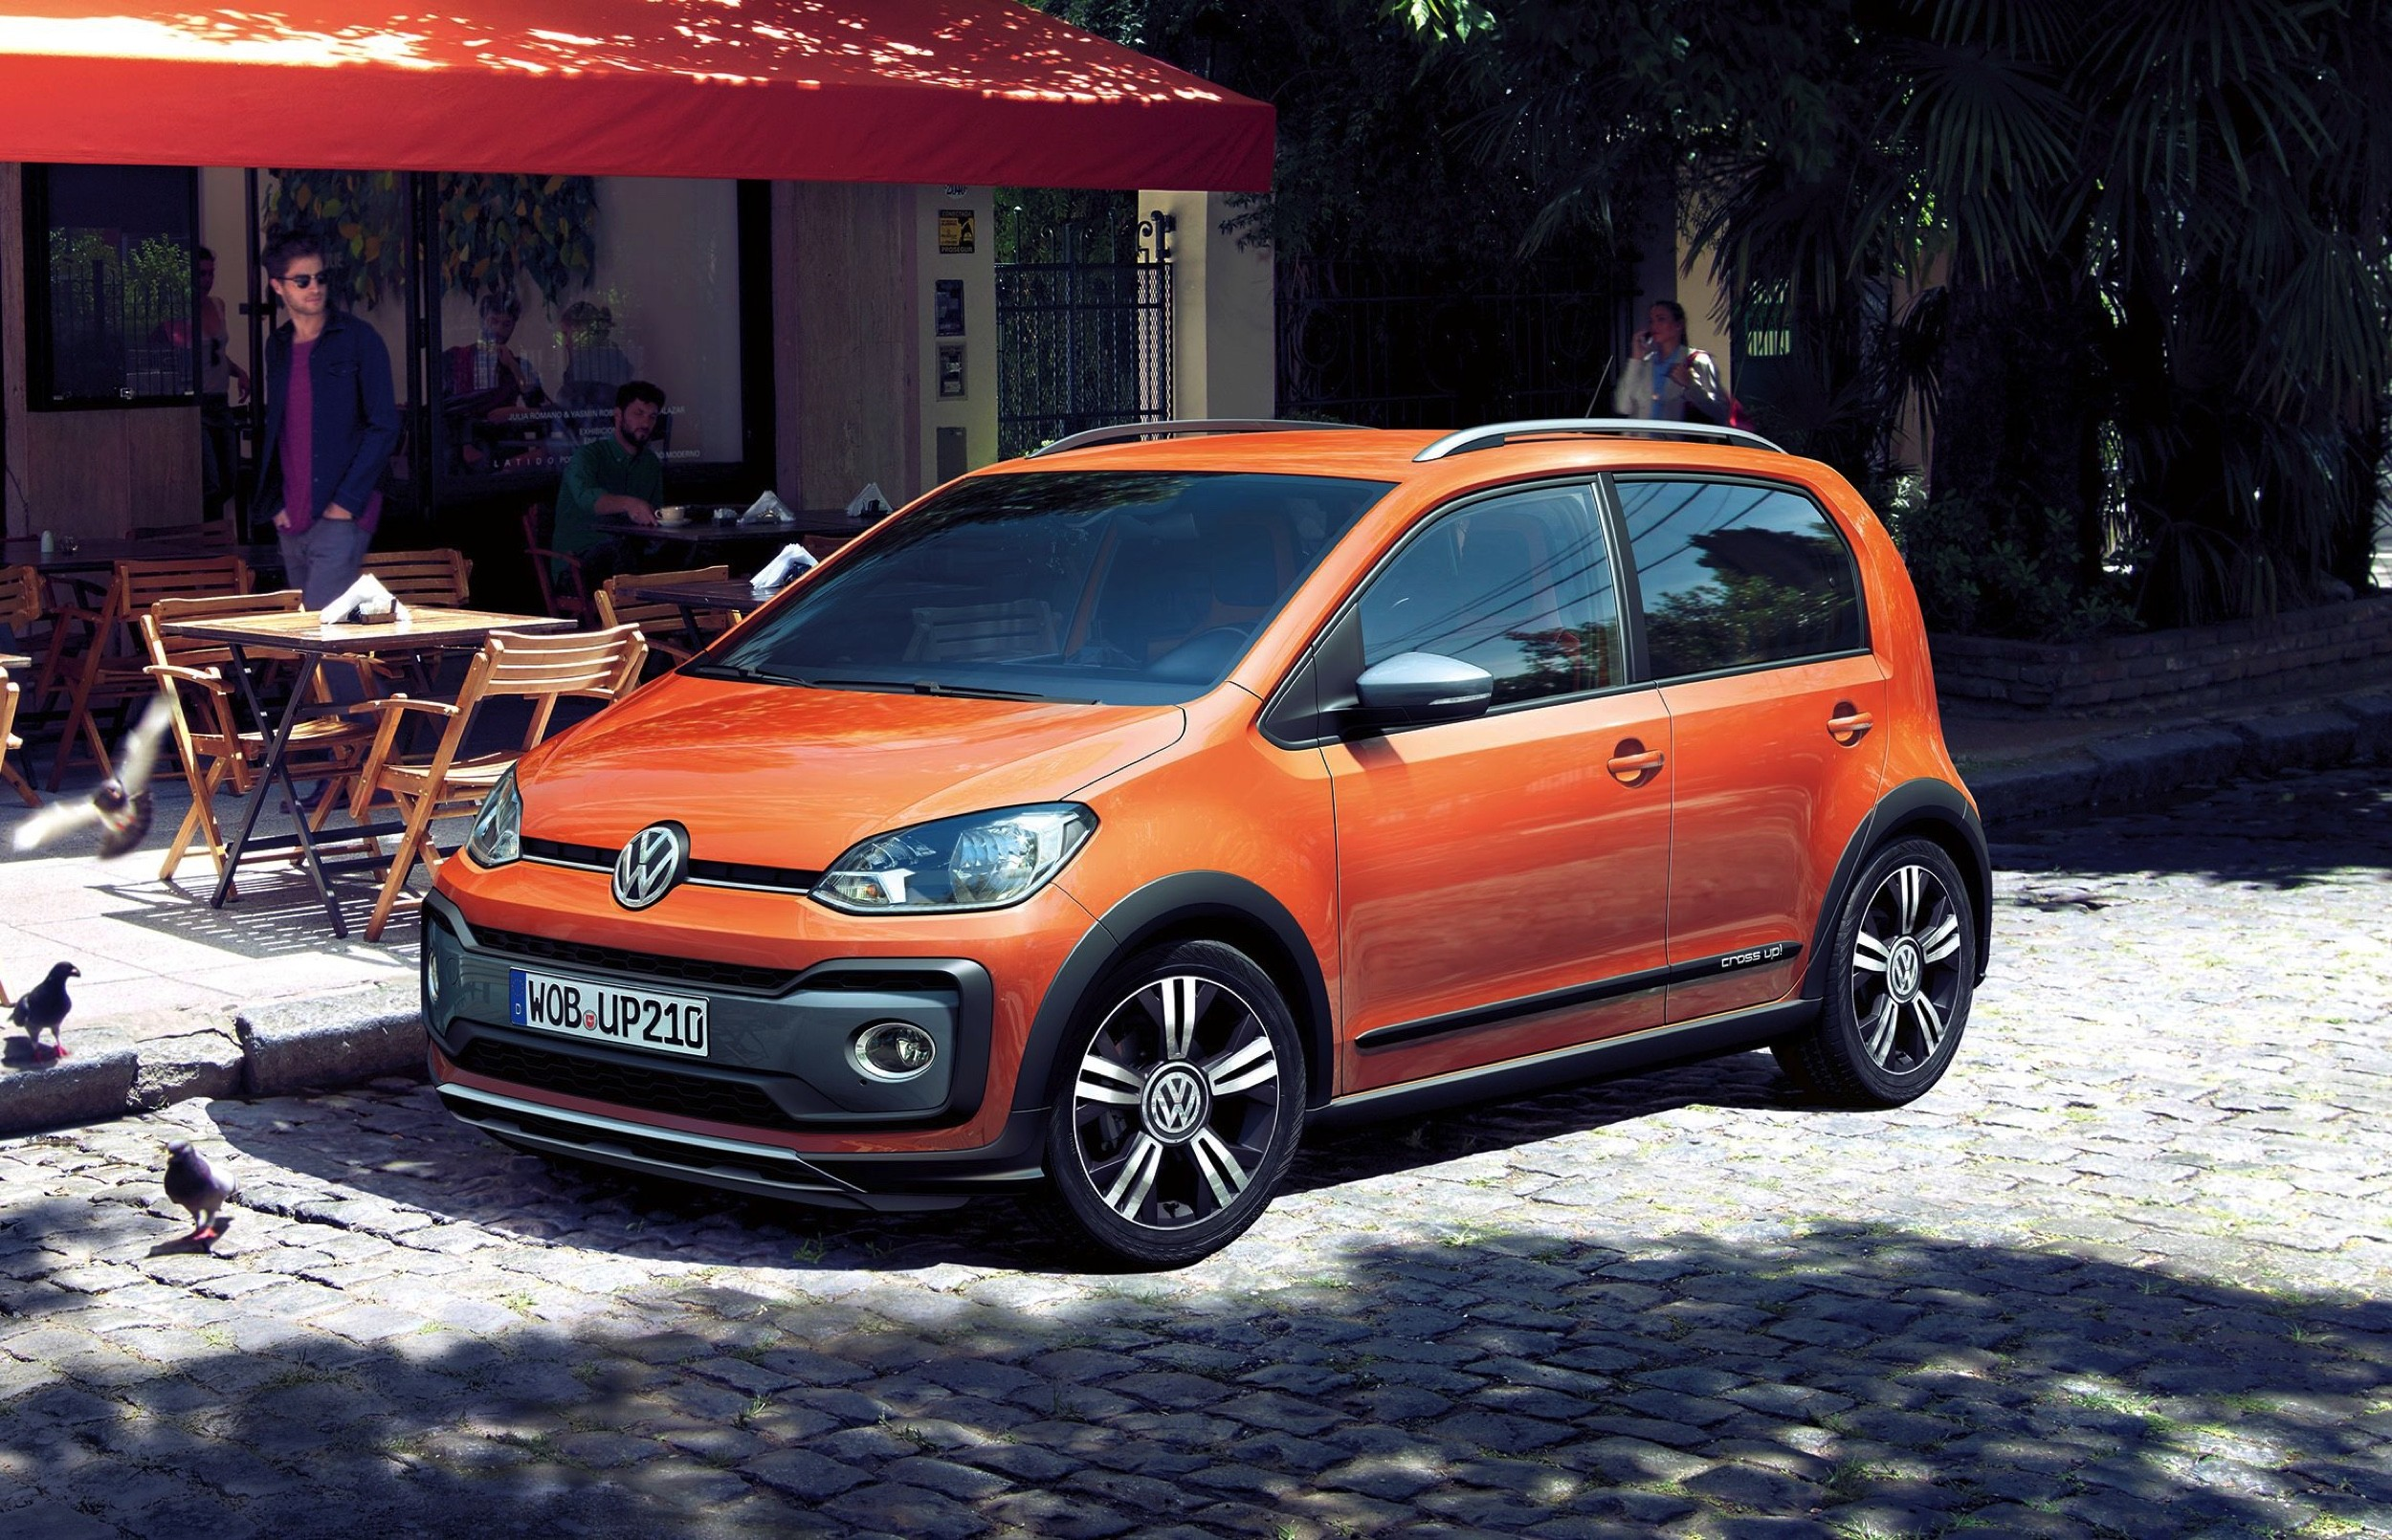 Volkswagen Cross Up -1- Autovisie.nl